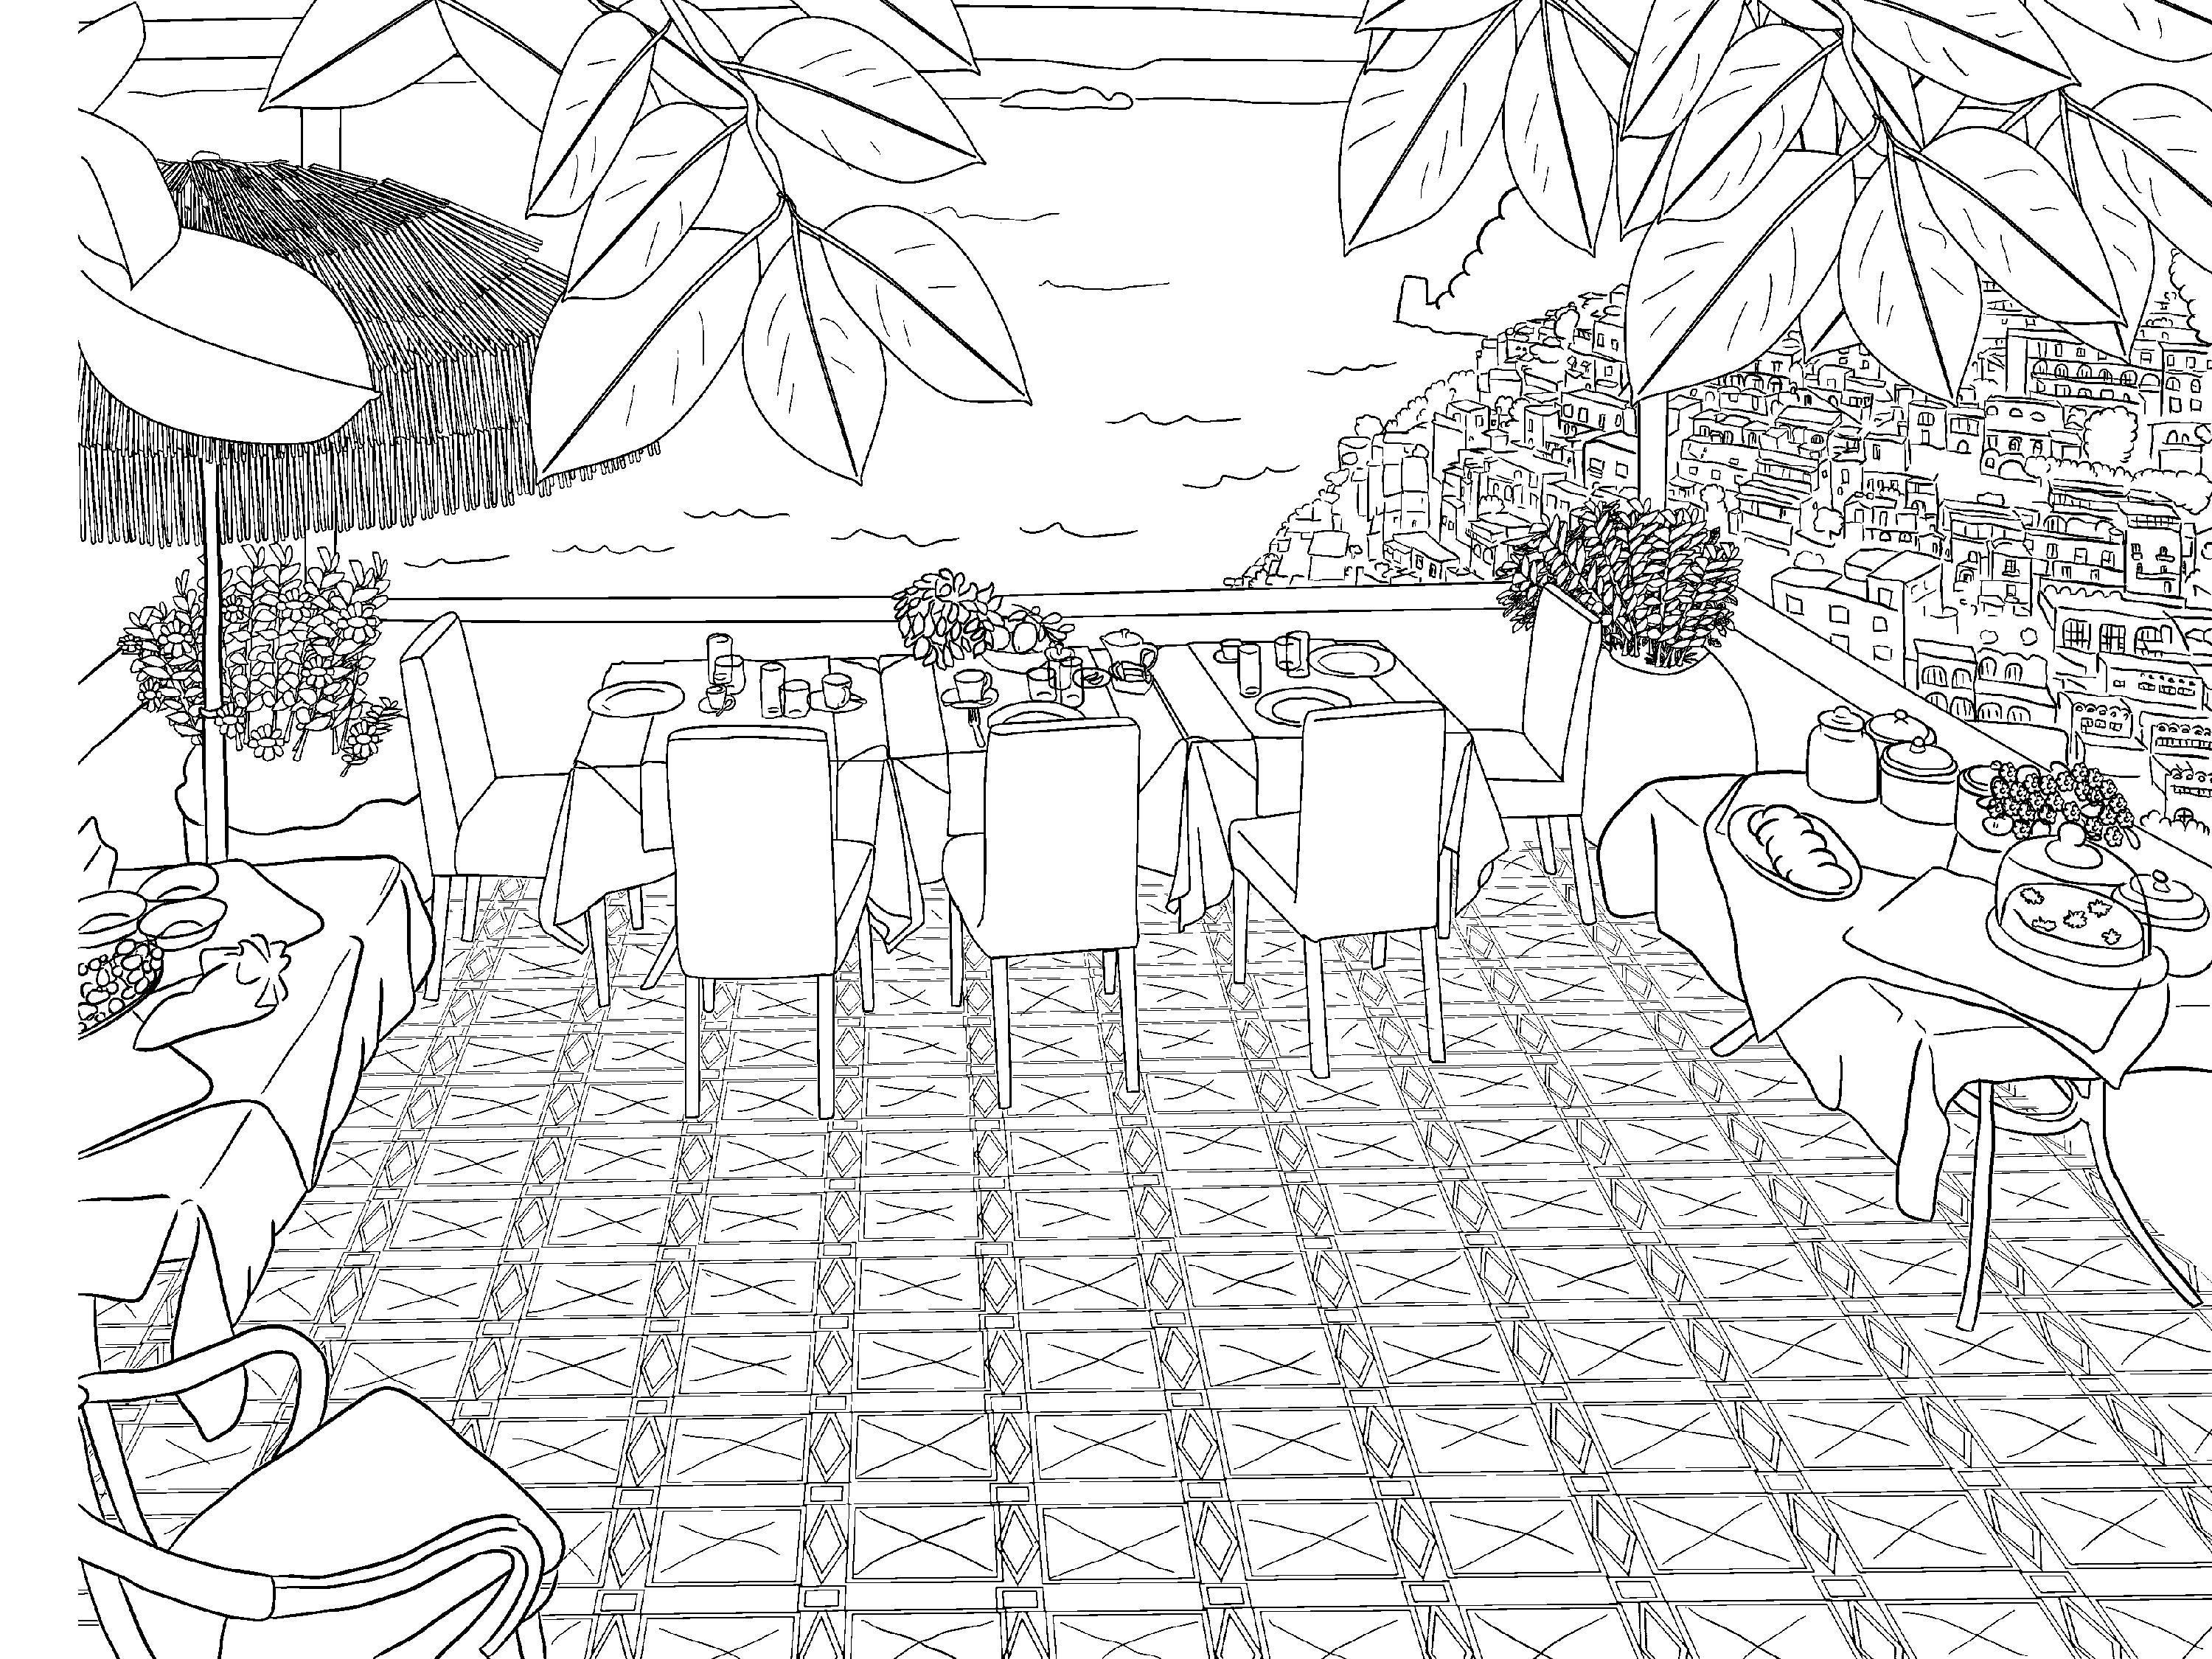 Beautiful Scenery Colouring Pages | Beautiful scenery, Scenery and ...